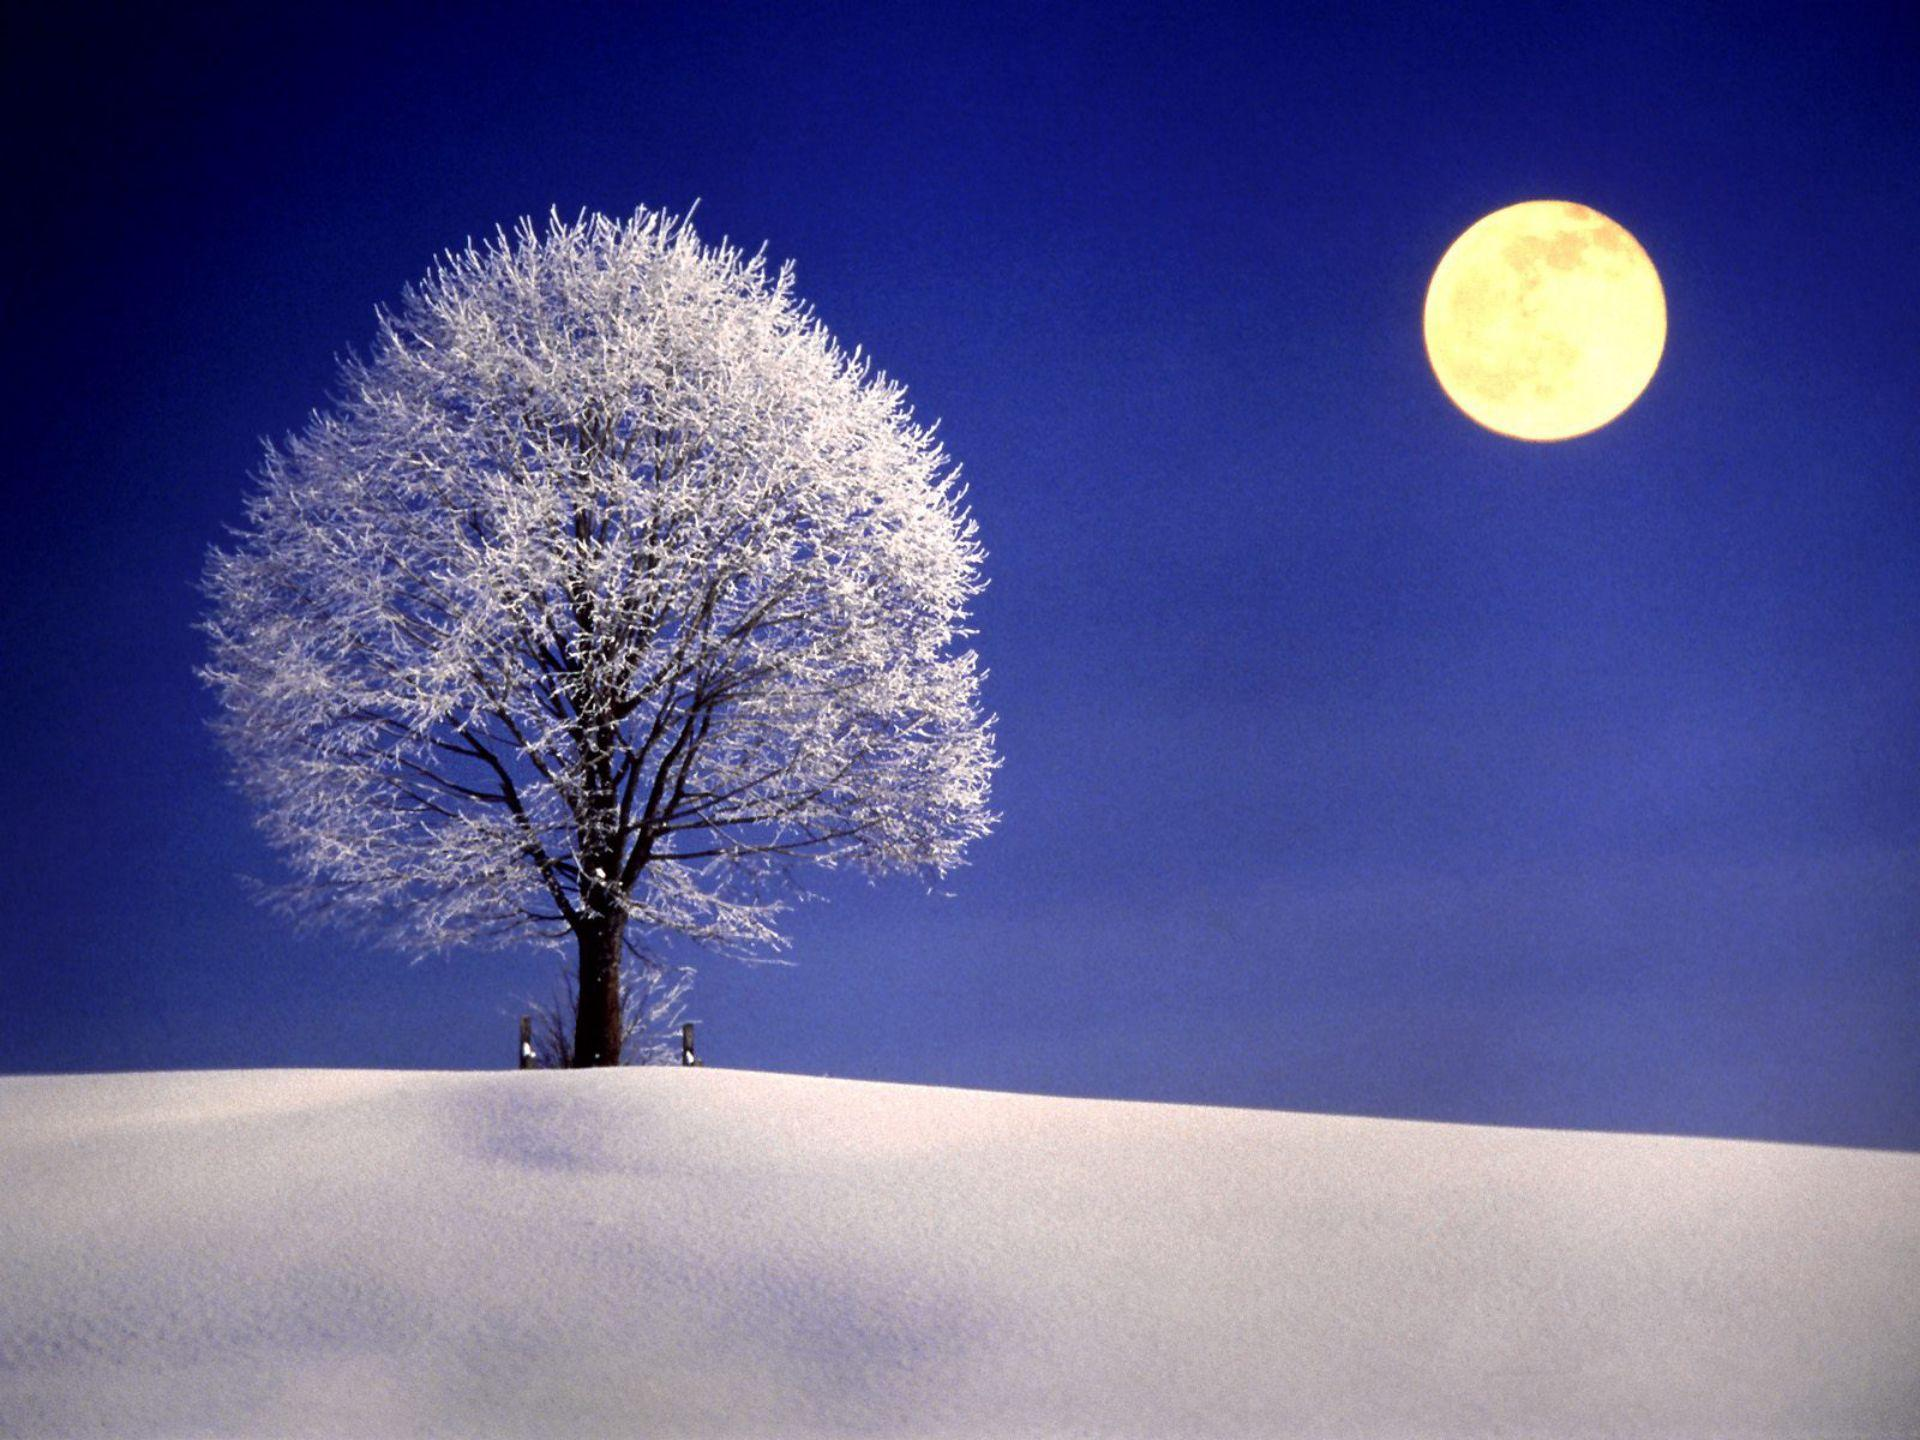 Winter Night with Full Moon widescreen wallpaper   Wide-